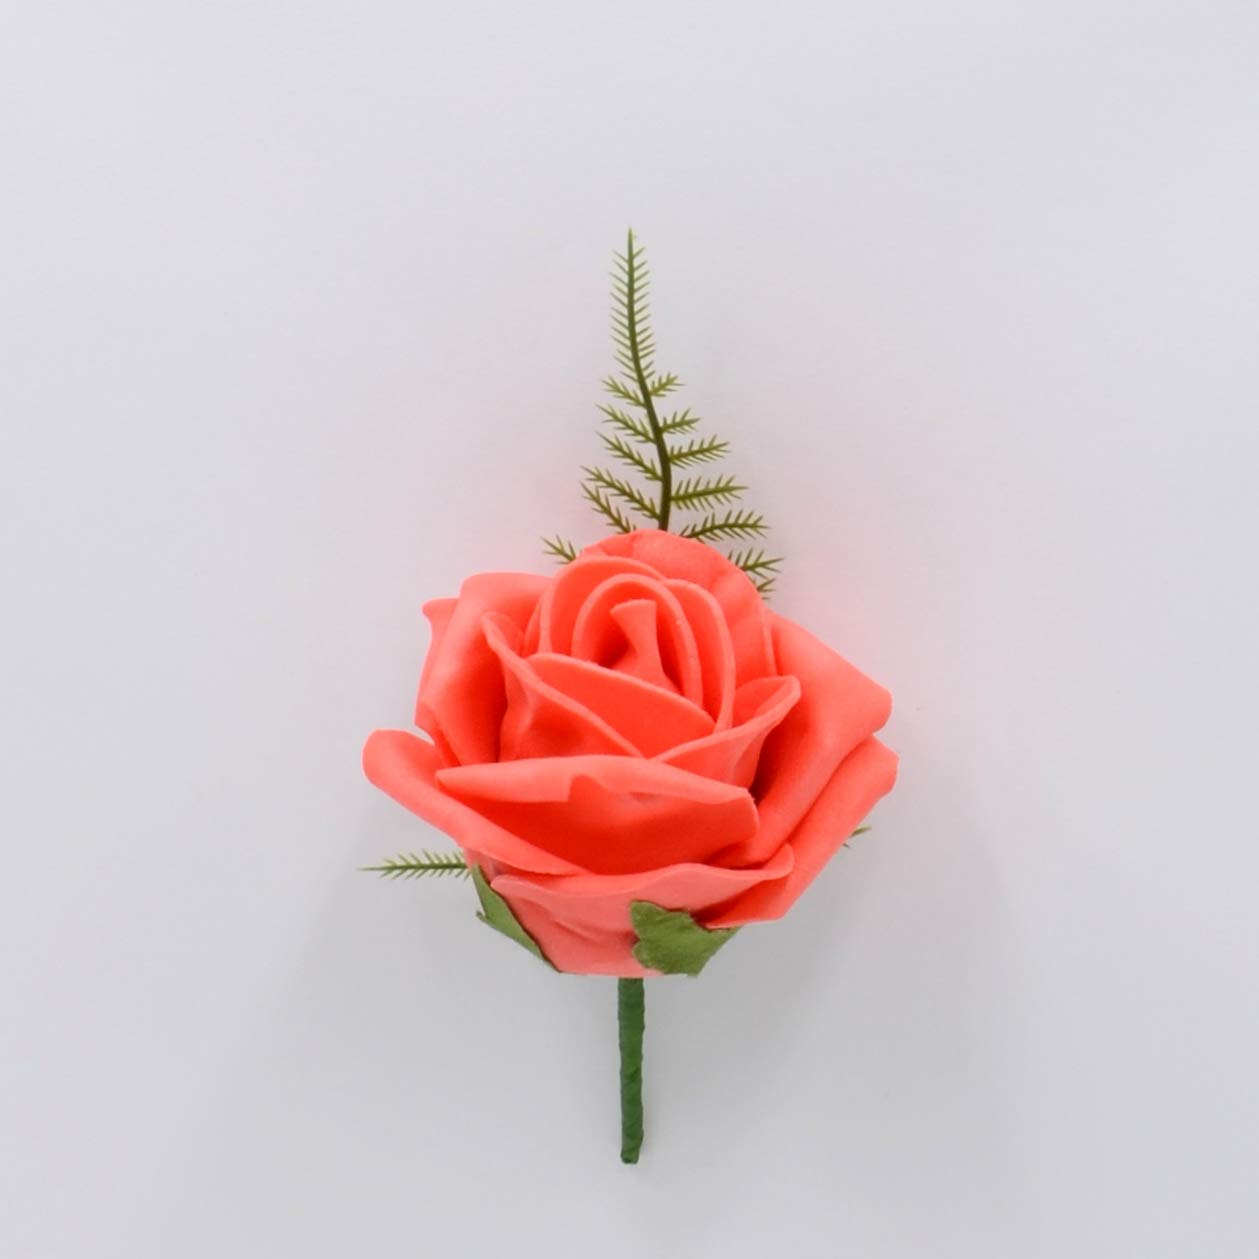 Artificial Wedding Flowers Hand-Made by Petals Polly Foam Rose Buttonhole in Orange Coral